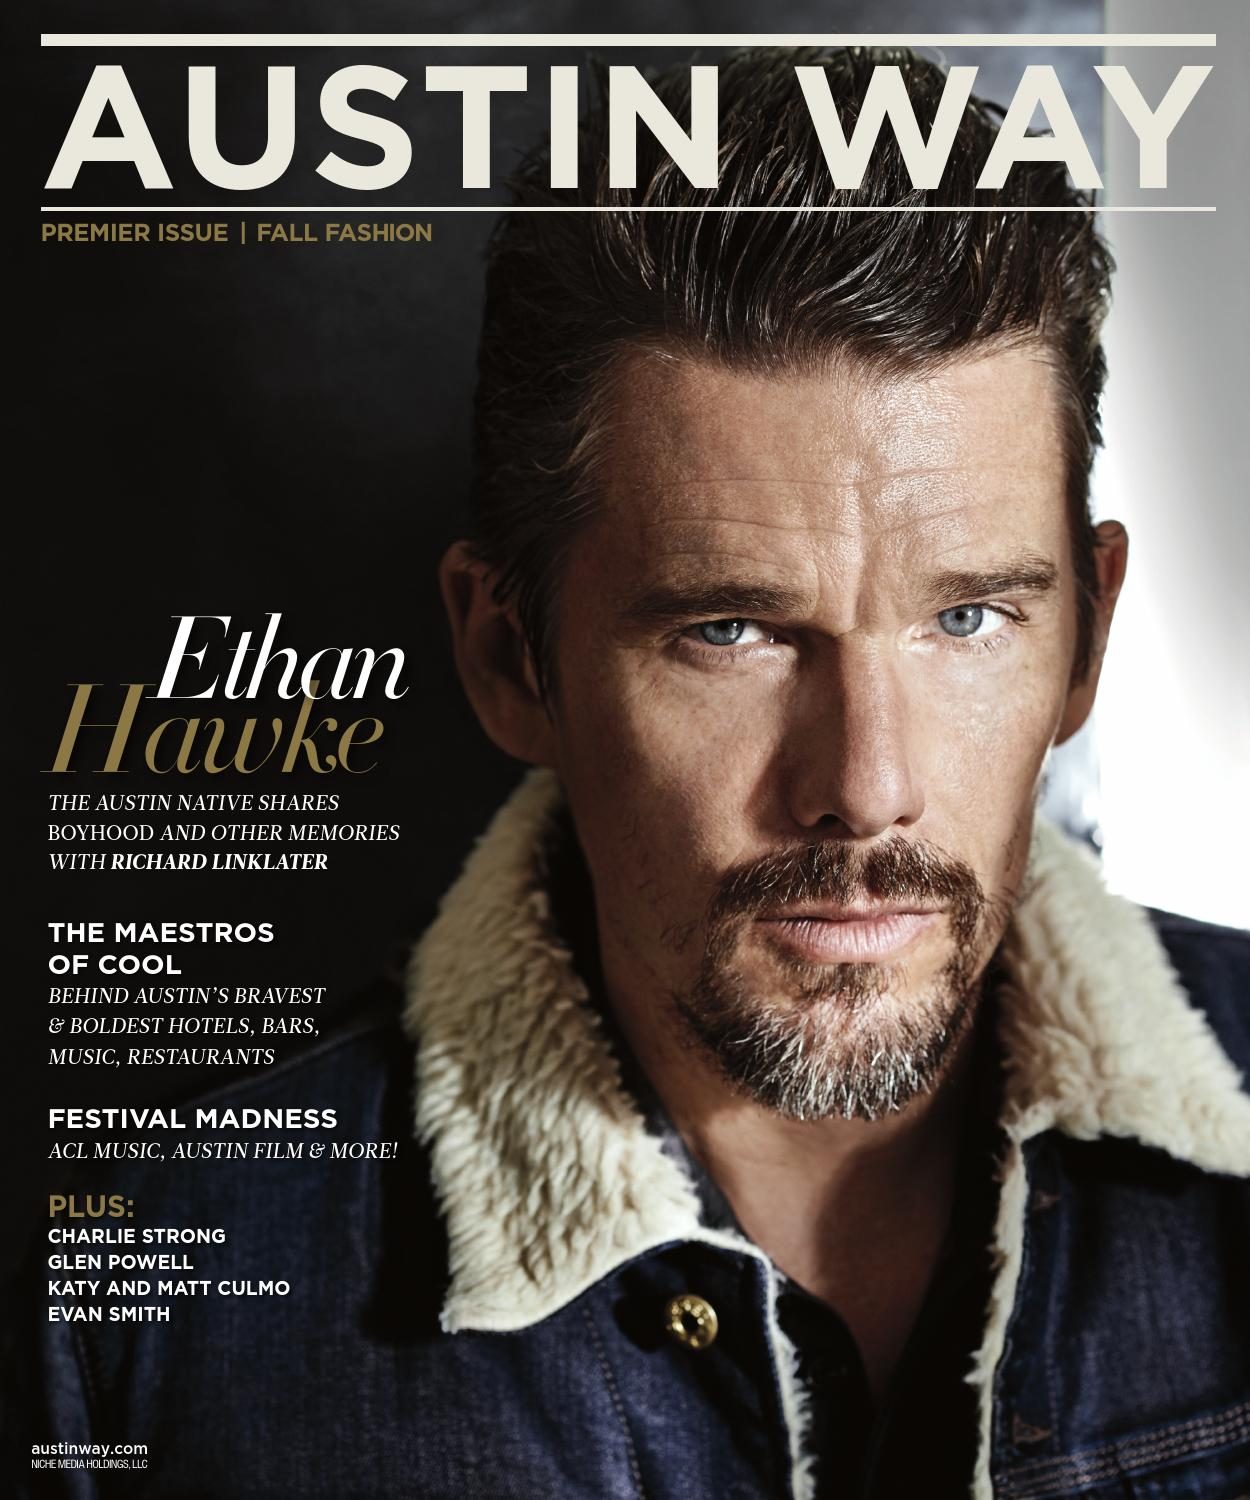 aad91c294b768b Austin Way - 2014 - Issue 1 - September+October by Niche Media Holdings,  LLC - issuu